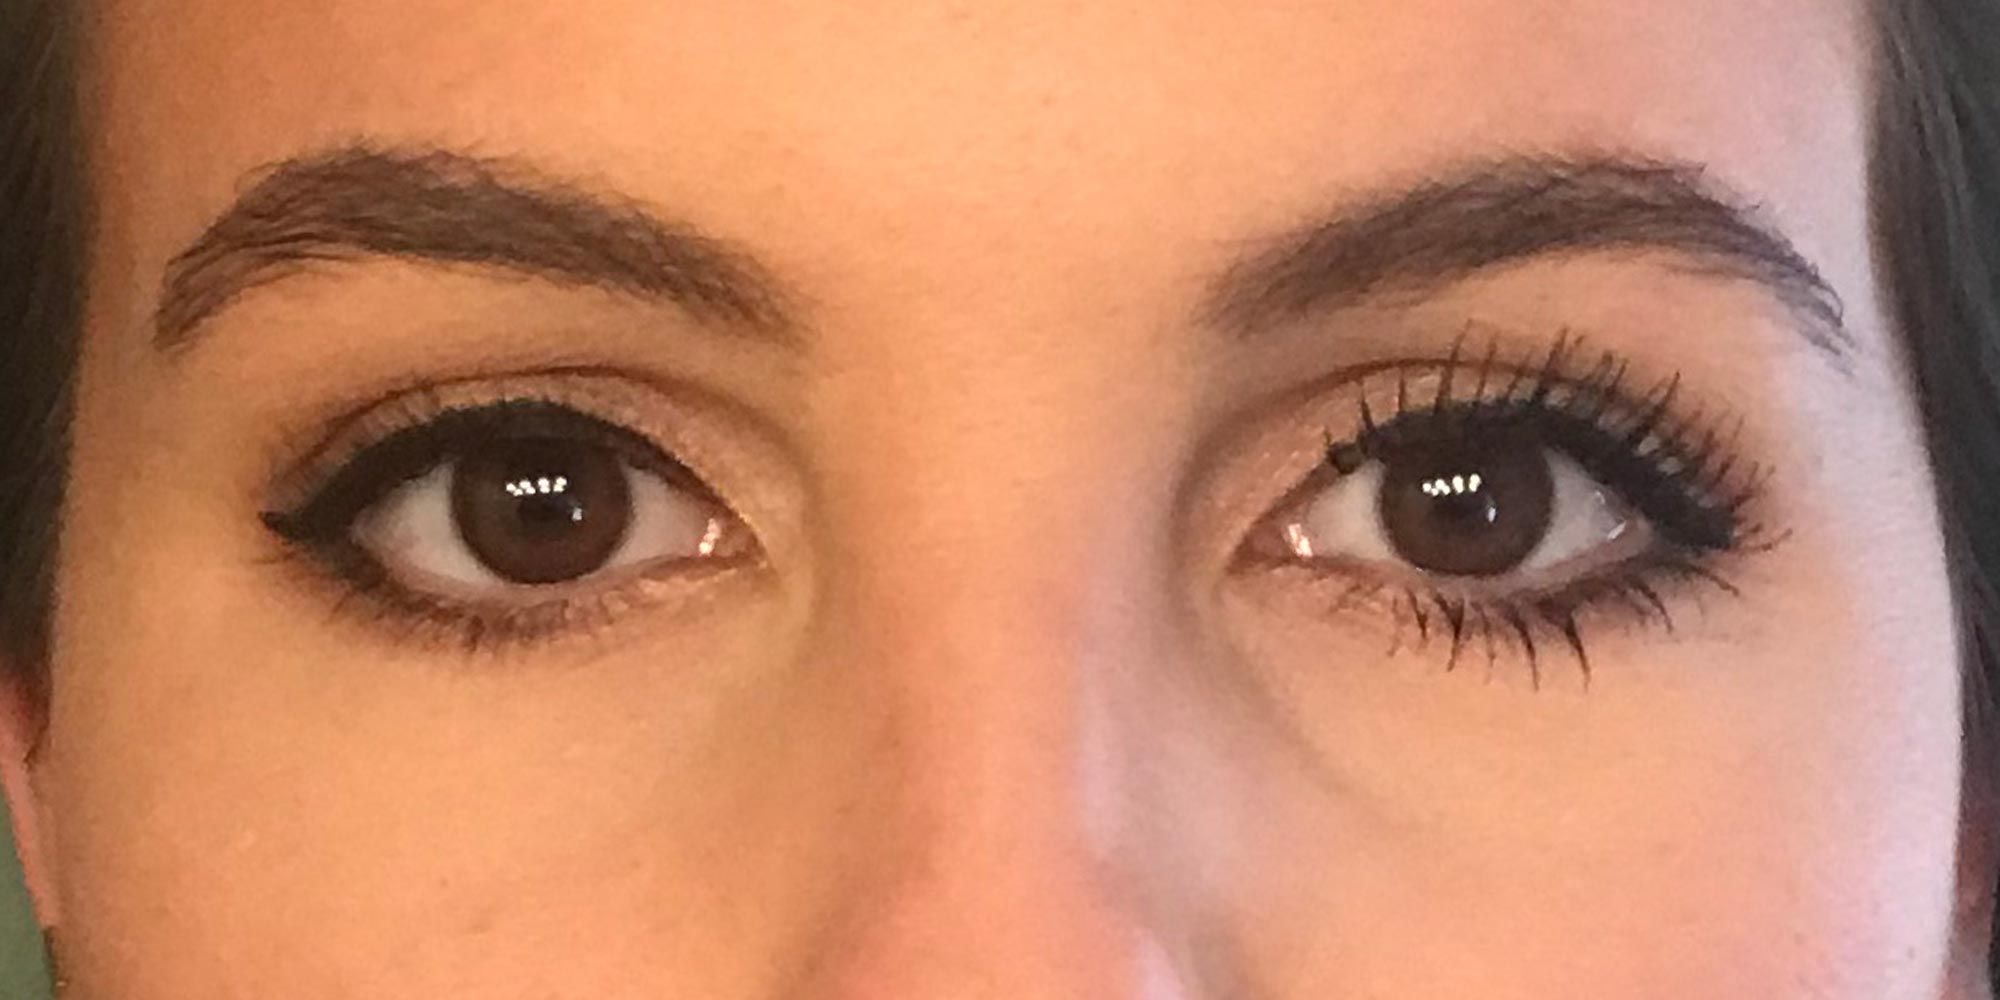 This $9 Mascara Is the Secret to My Super Long Lashes